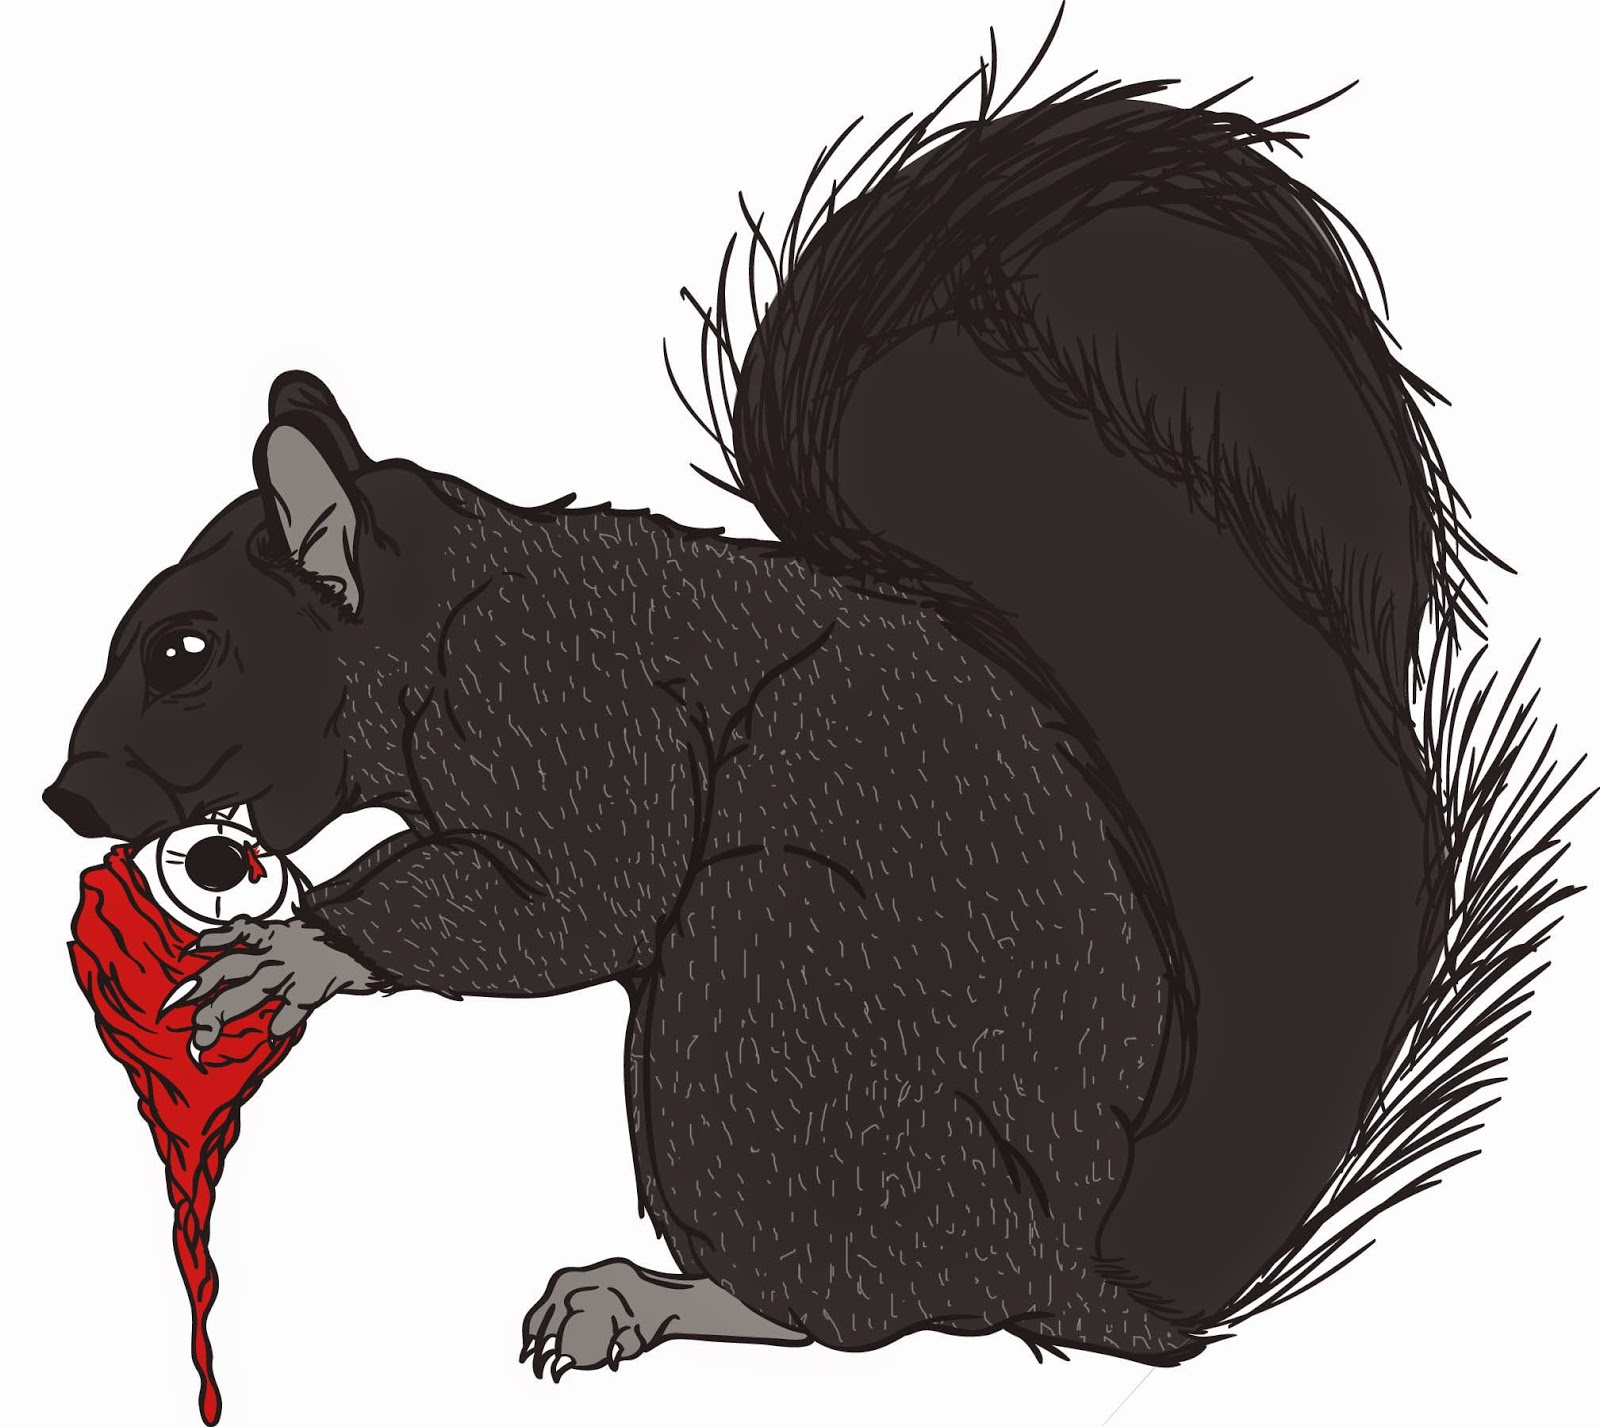 Printmaking And Illustration Blog Zombie Squirrel